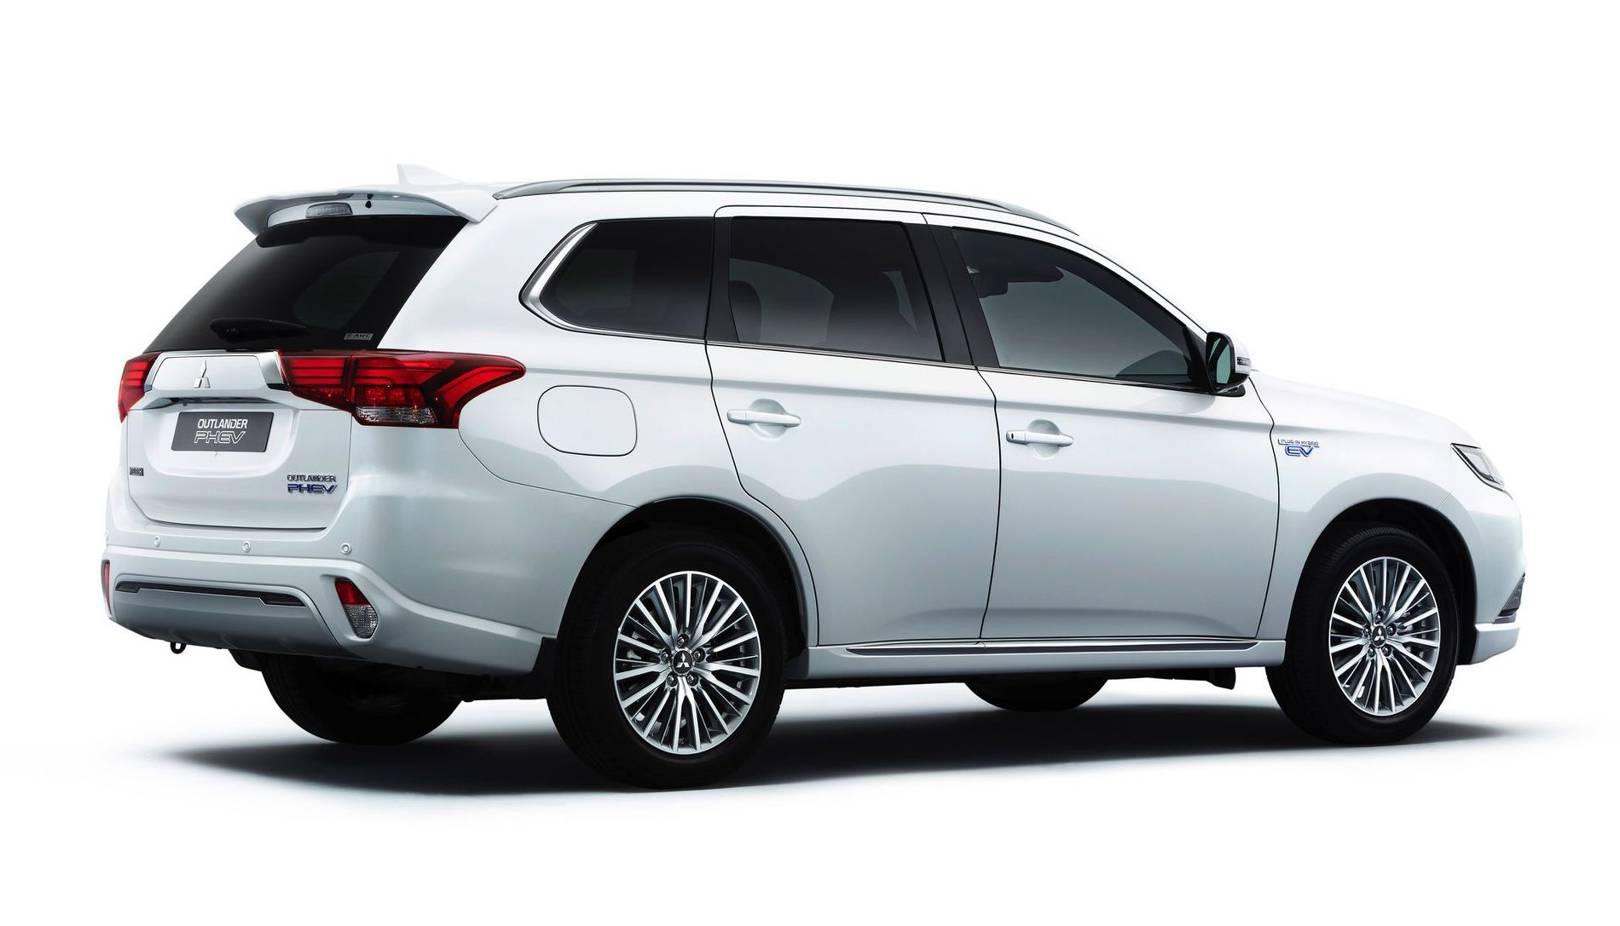 Mitsubishi Outlander PHEV 2019 review: This isn't the hybrid SUV you